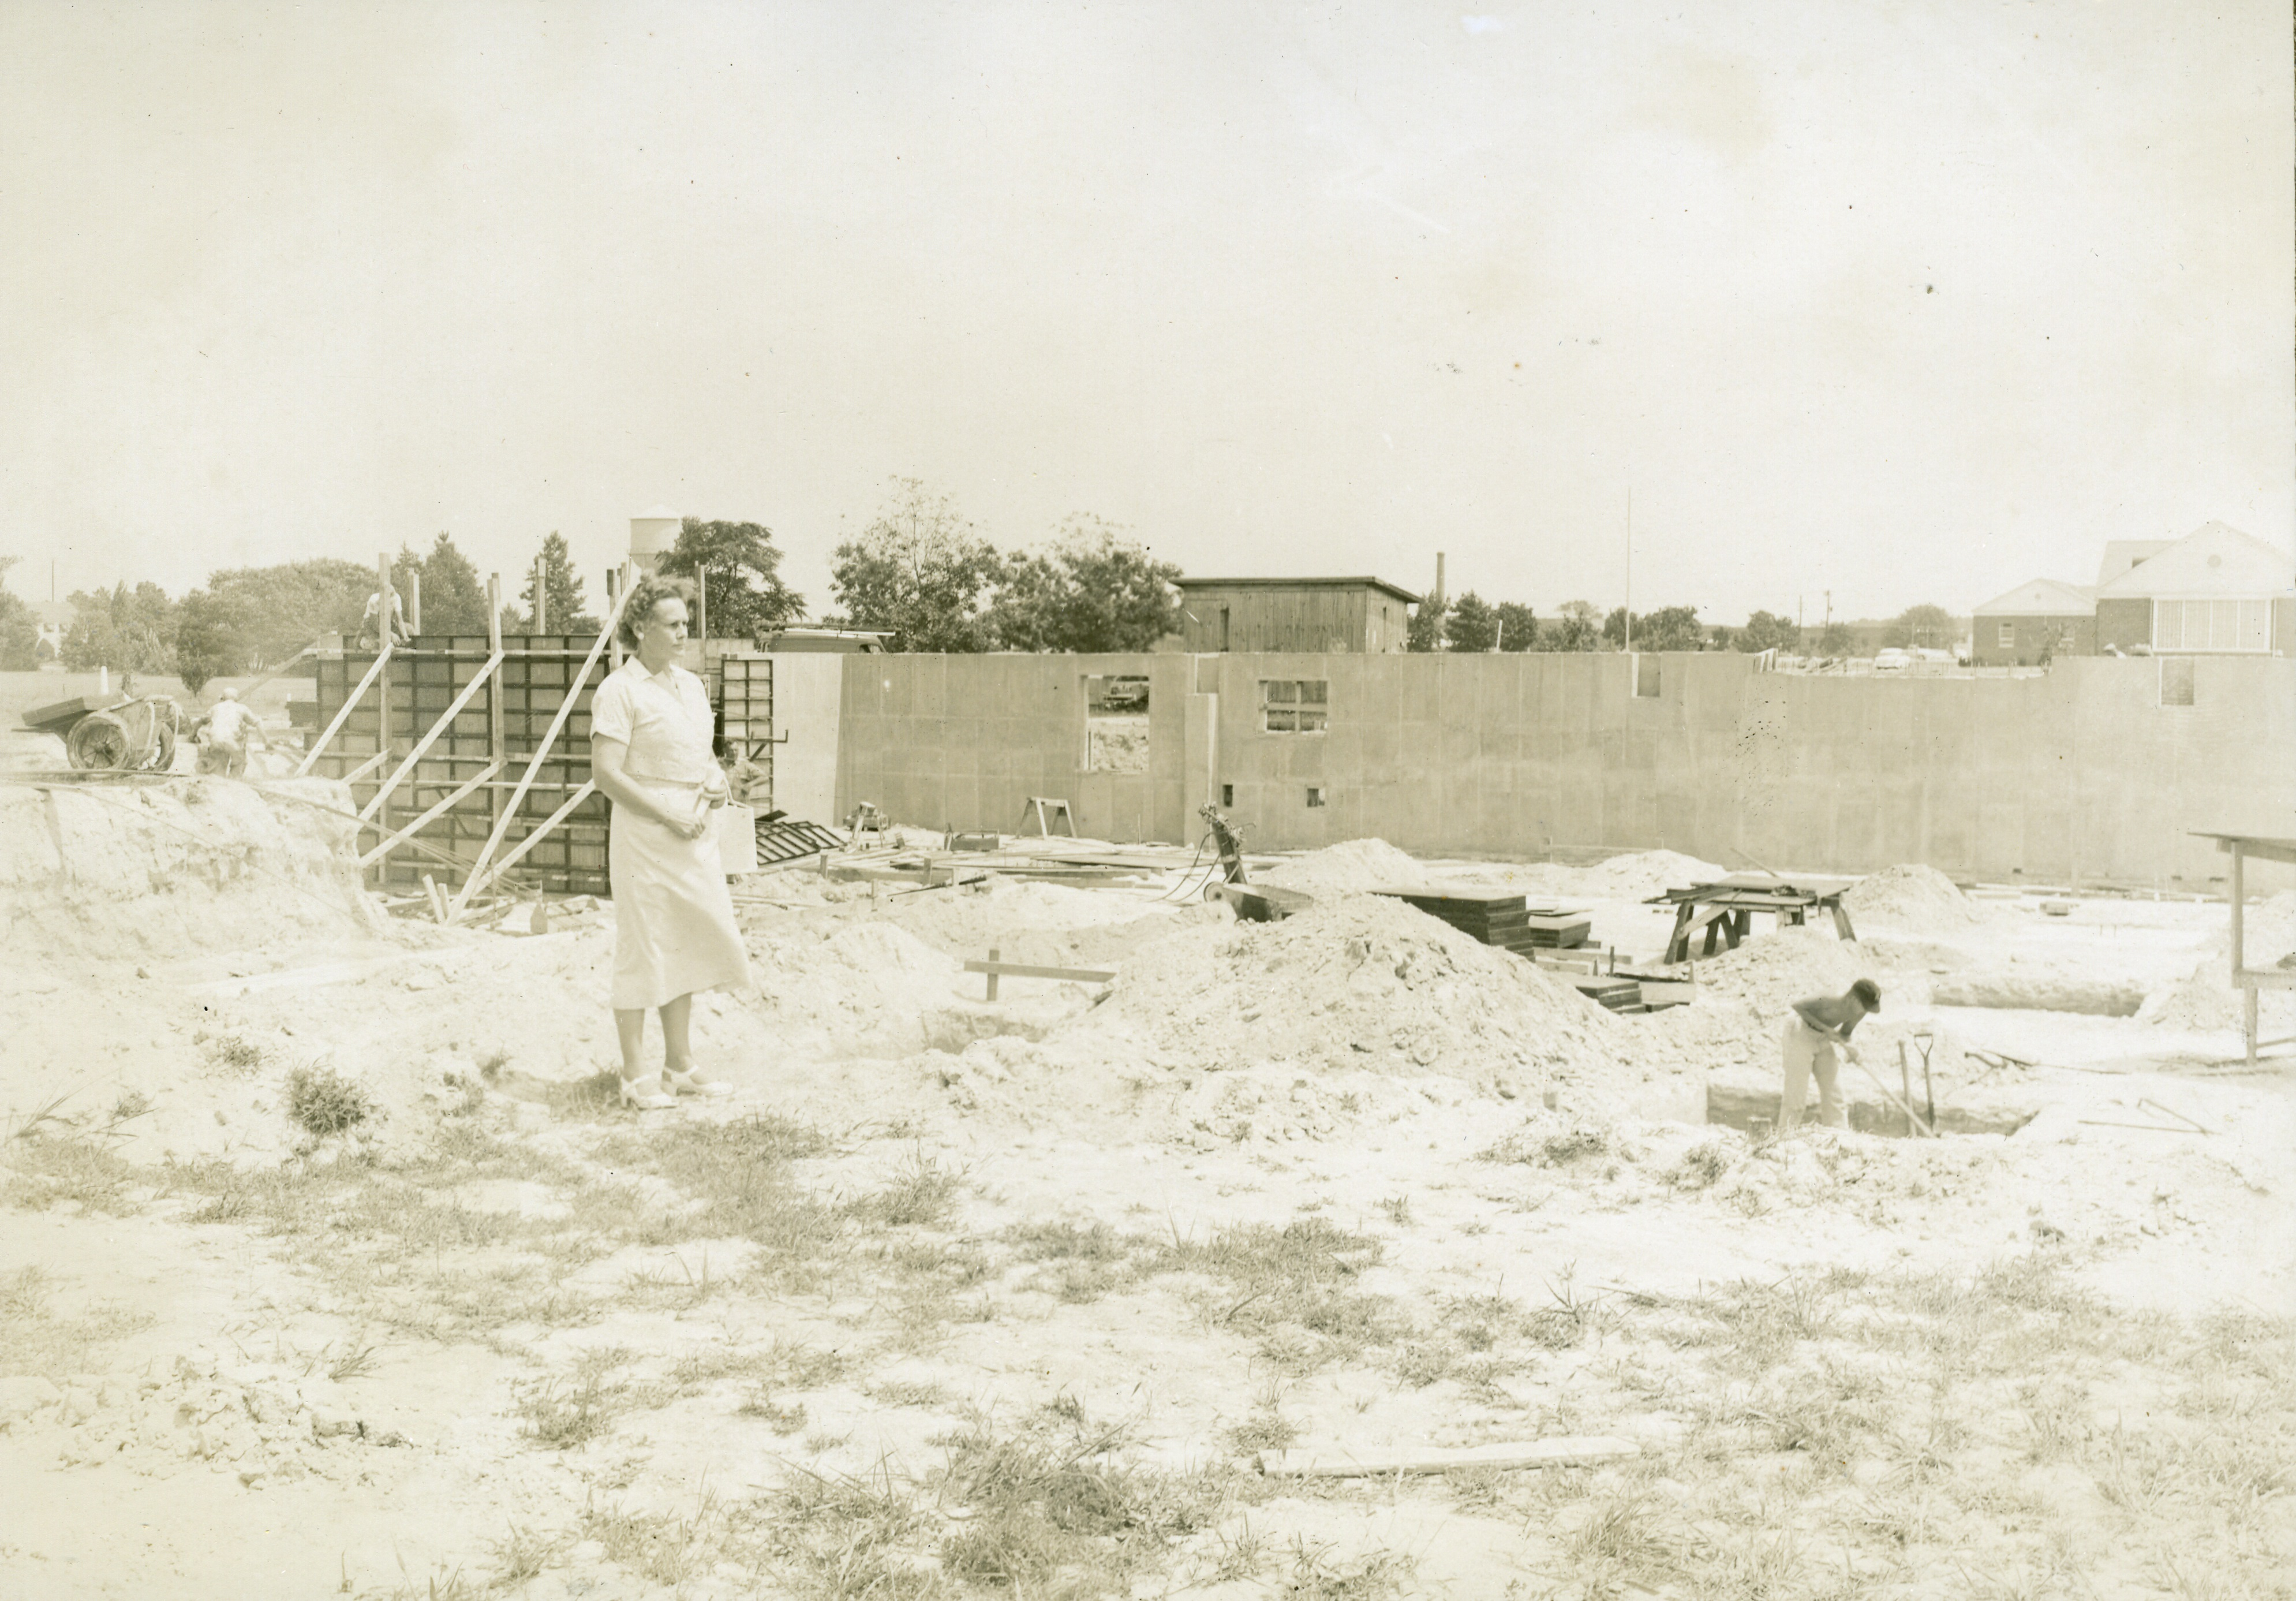 Construction of Blackwell Library, circa 1955